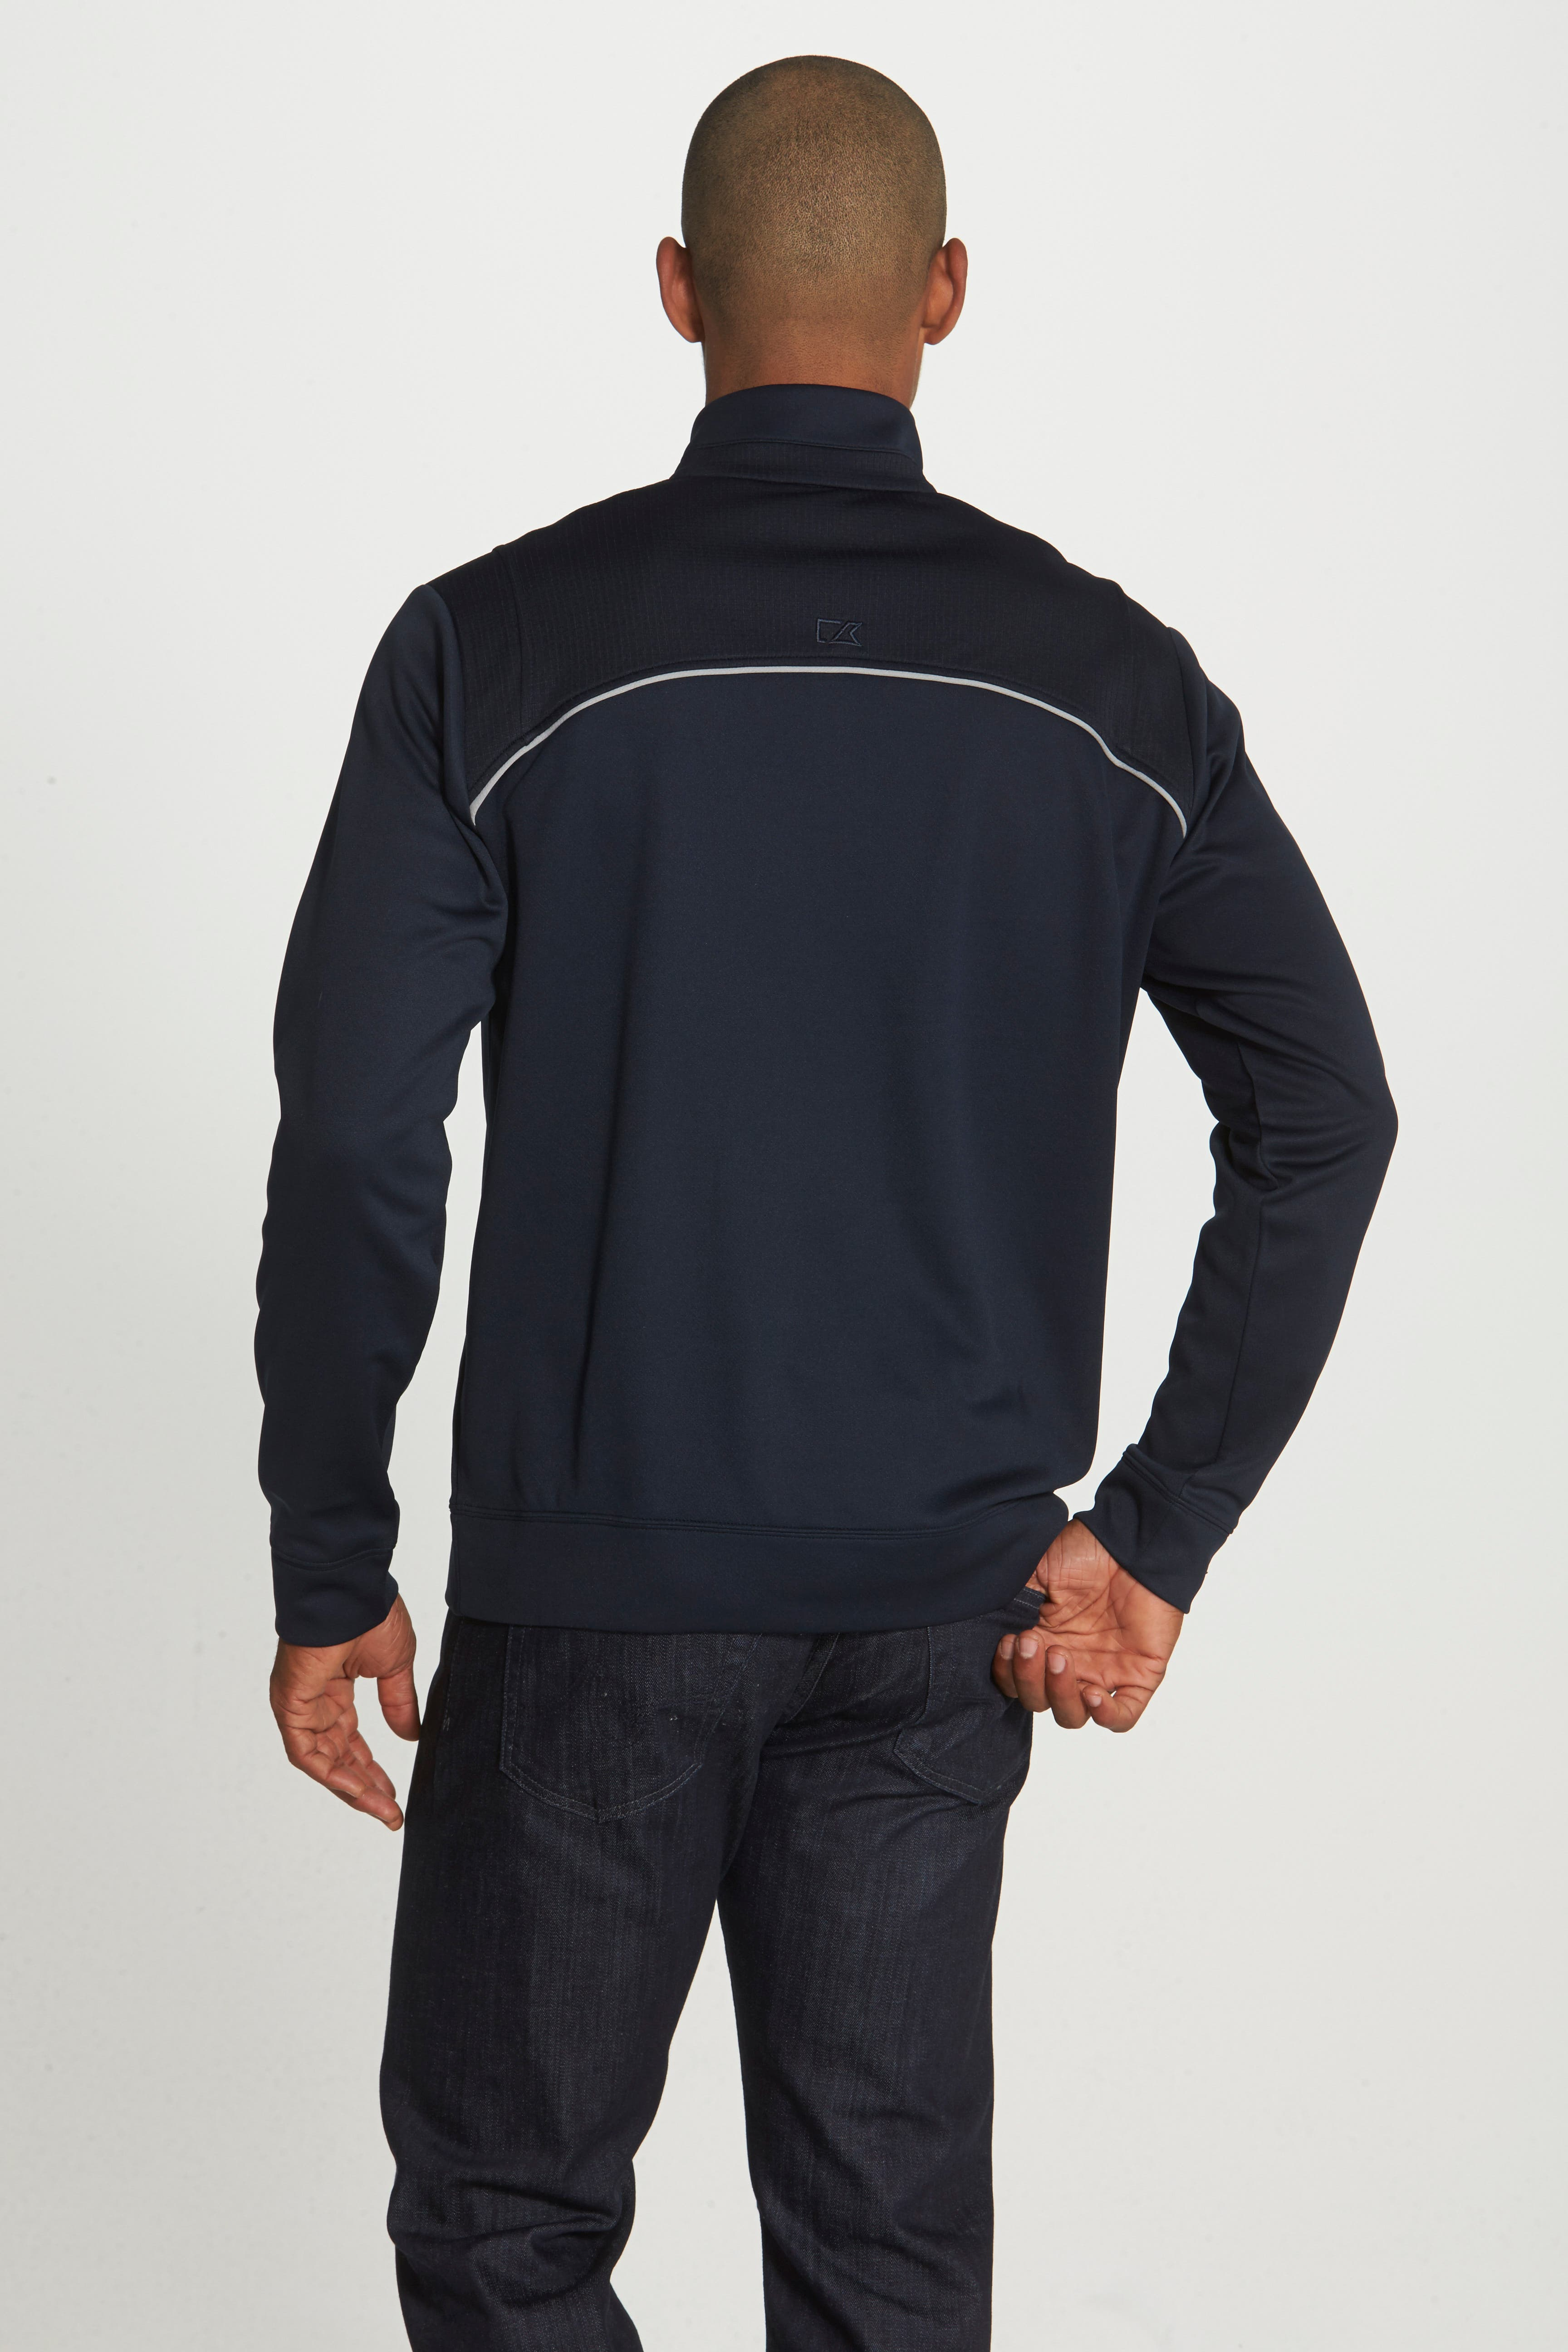 CUTTER & BUCK, Ridge WeatherTec Wind & Water Resistant Pullover, Alternate thumbnail 2, color, NAVY BLUE